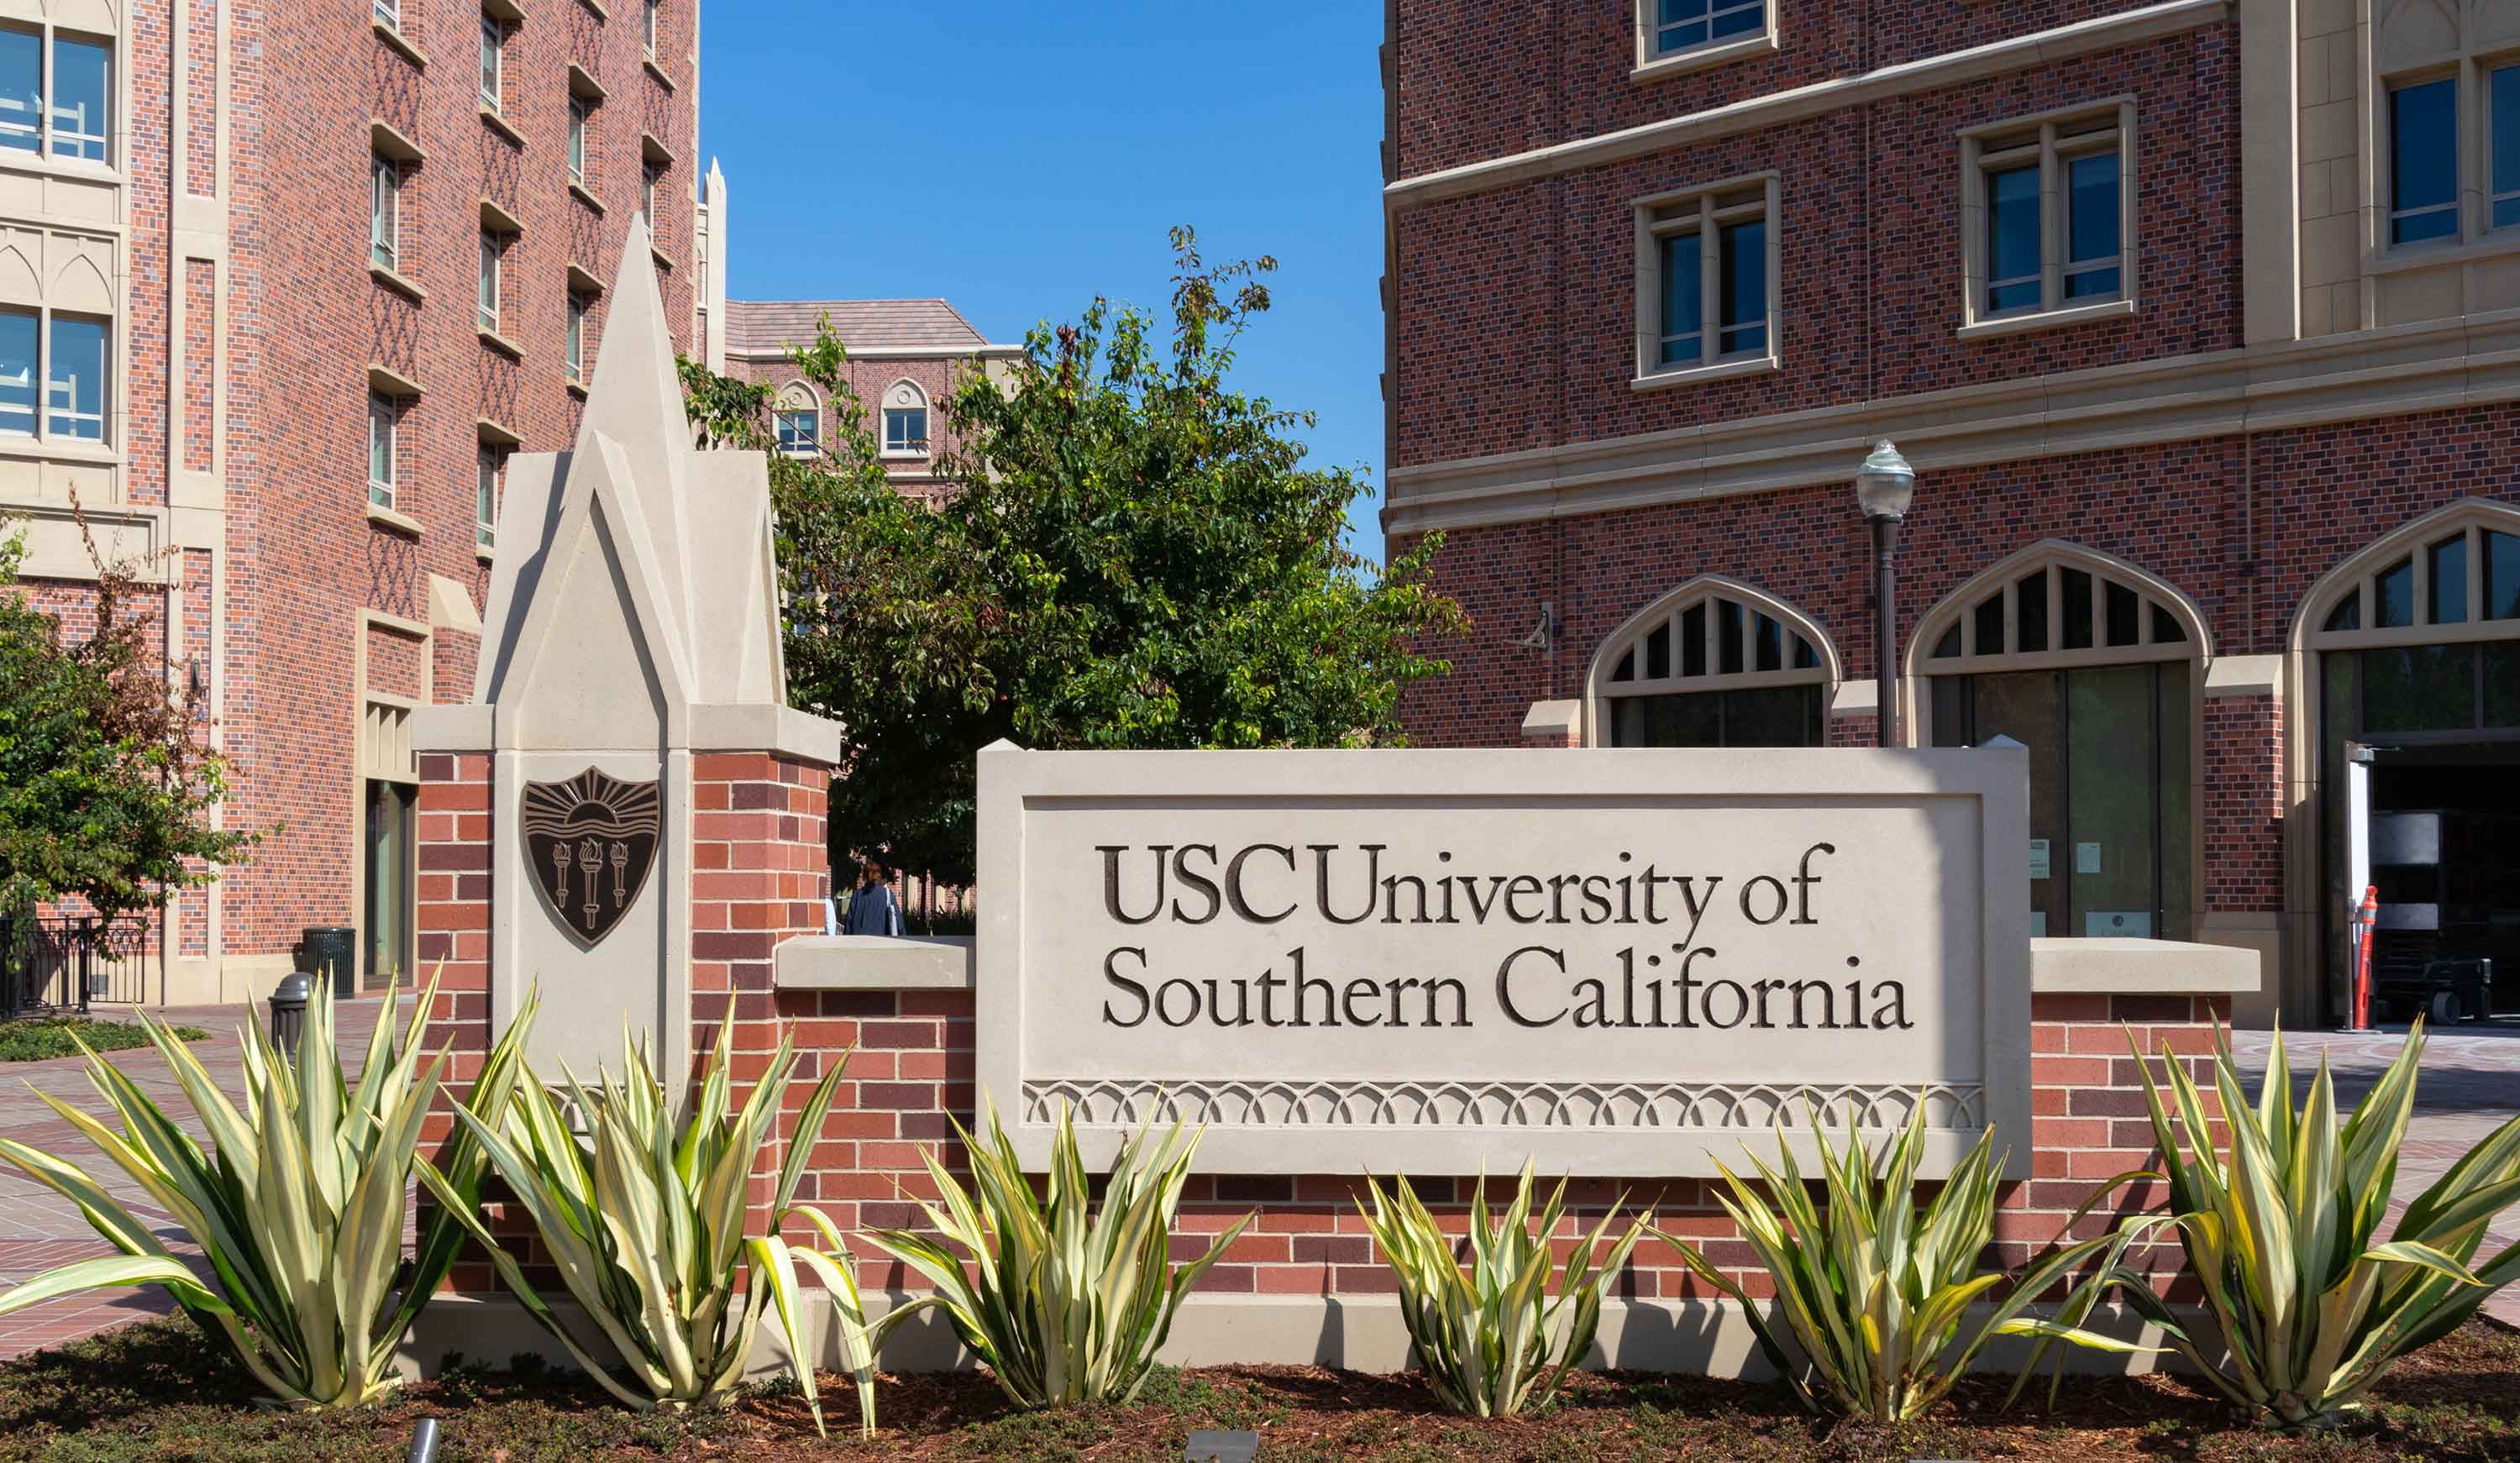 USC will award $4,000 scholarships per semester to students who stay at home